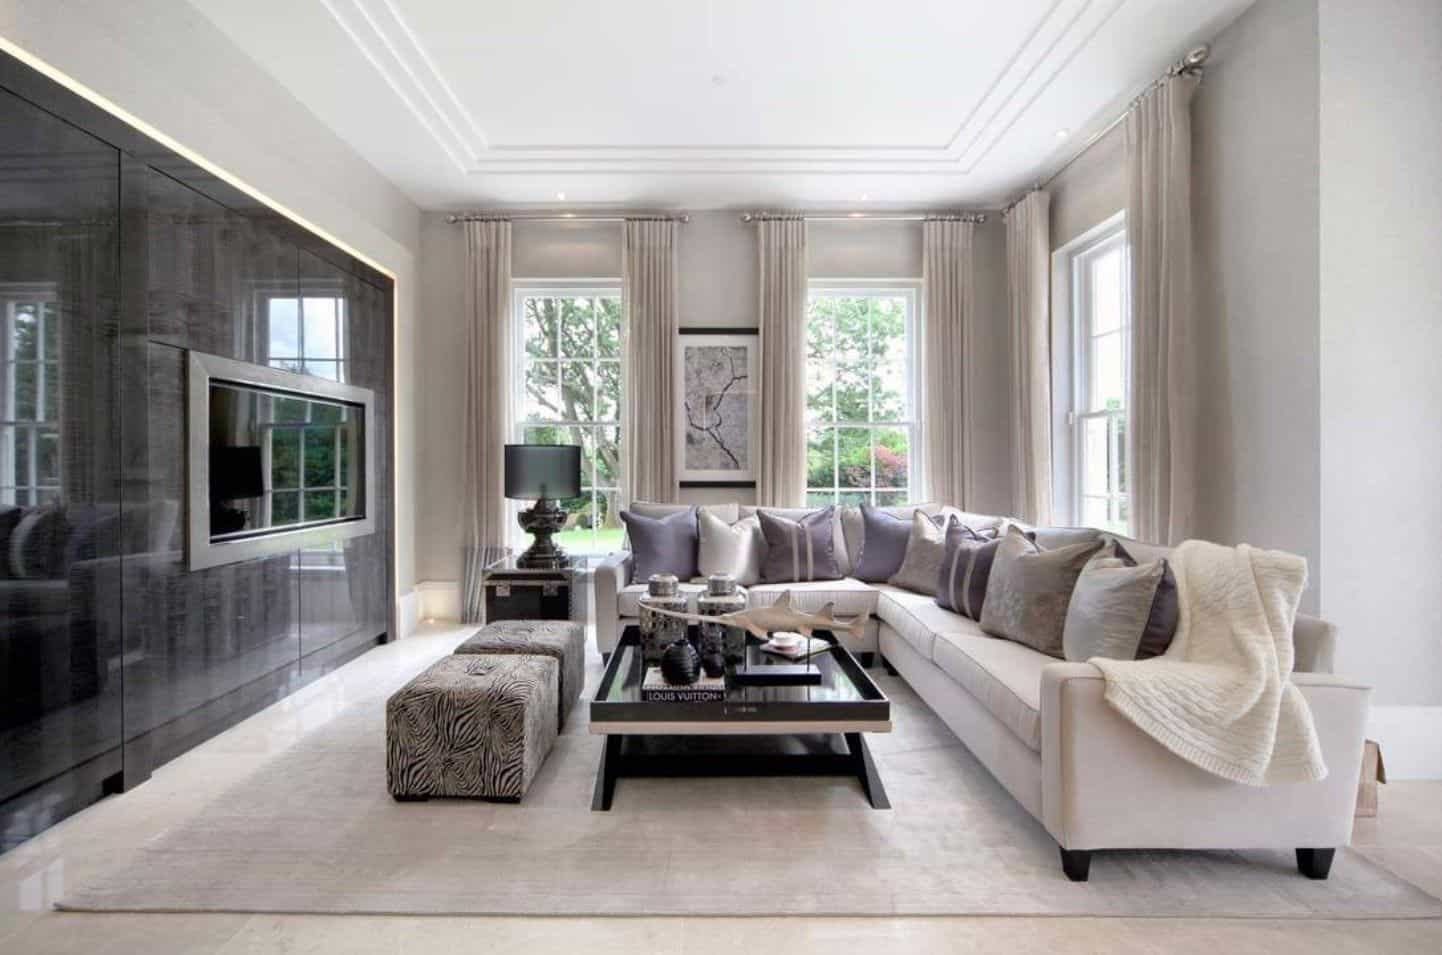 Sophisticated living room offers a wooden coffee table paired with zebra stools and an L-shaped sectional that's filled with fluffy pillows and a white throw blanket.